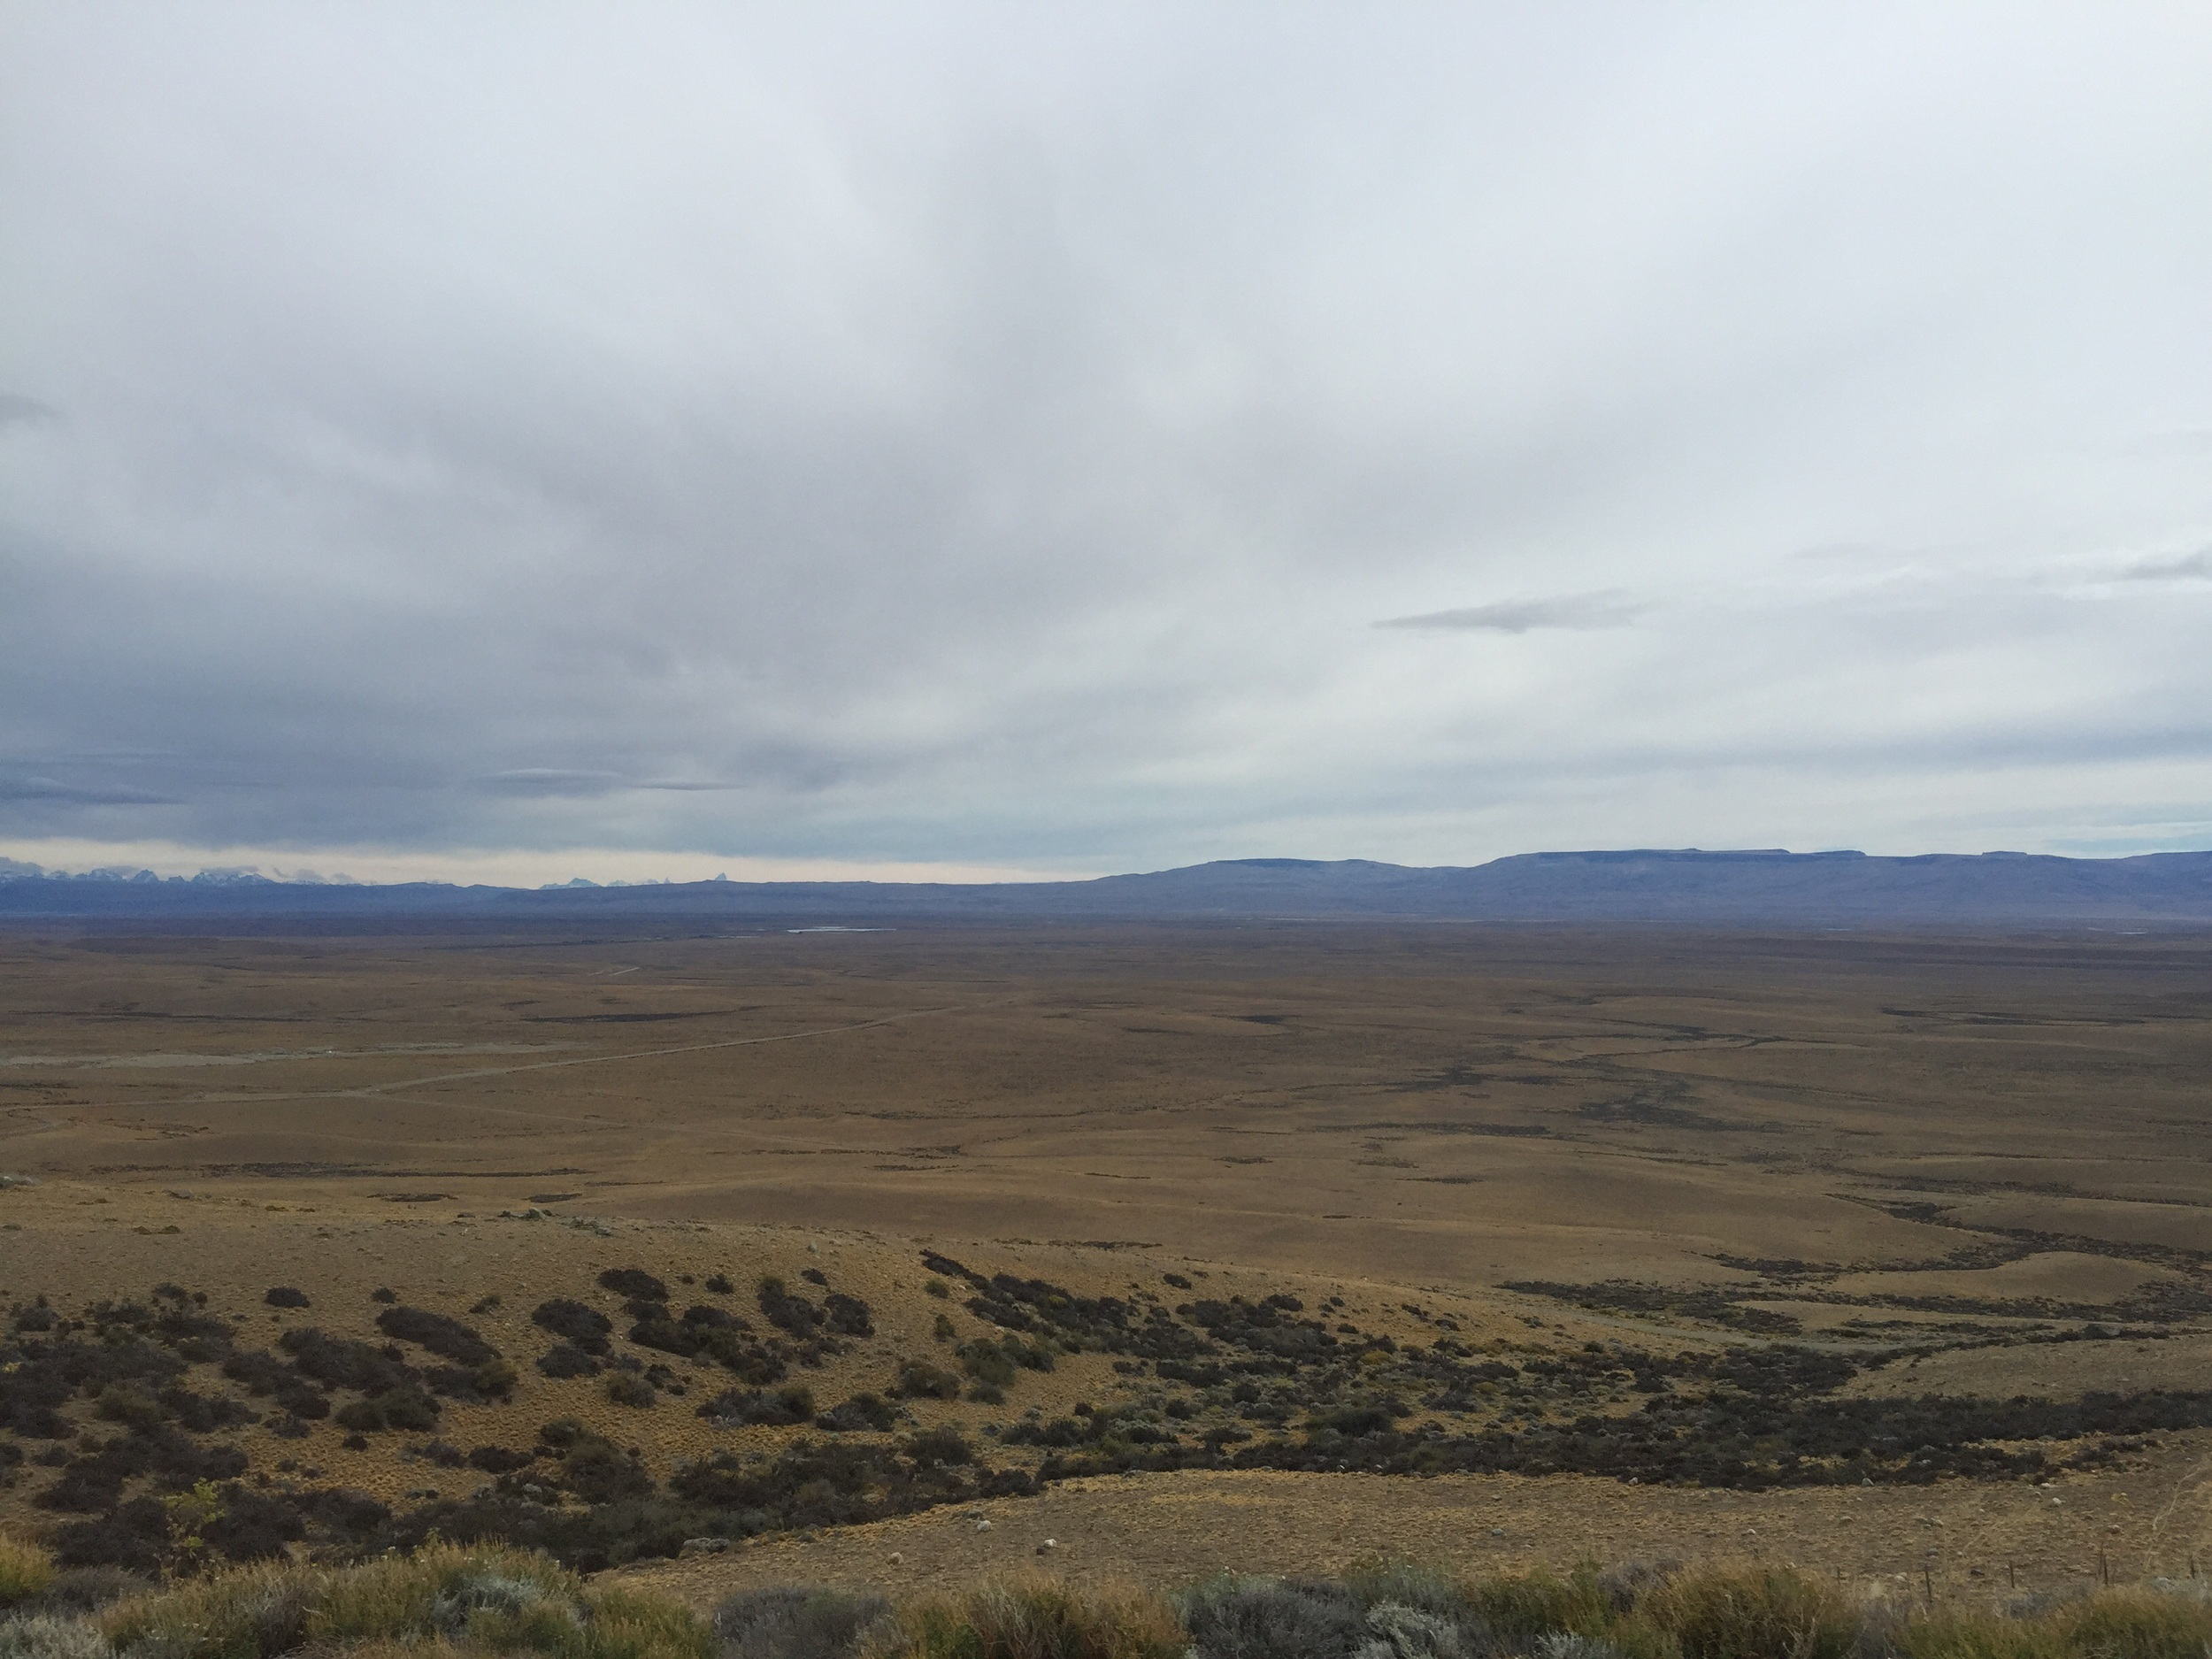 Crossing the steppe to El Calafate.